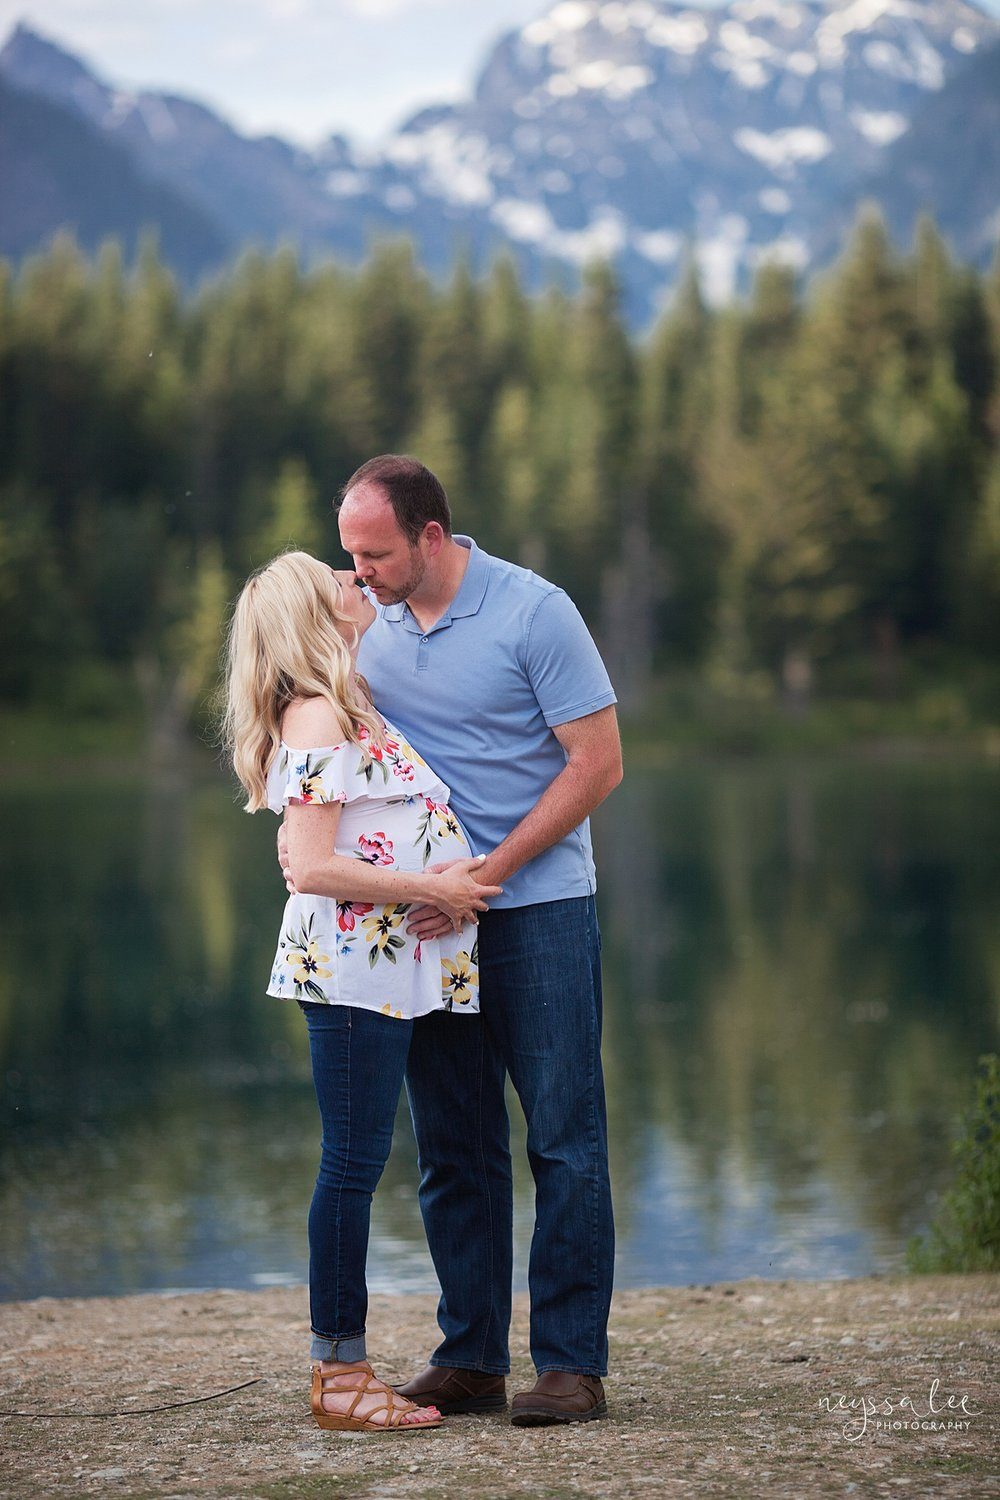 Maternity Photos in the Mountains, Gold Creek Pond, Neyssa Lee Photography, Snoqualmie Family Photographer, Mountain View